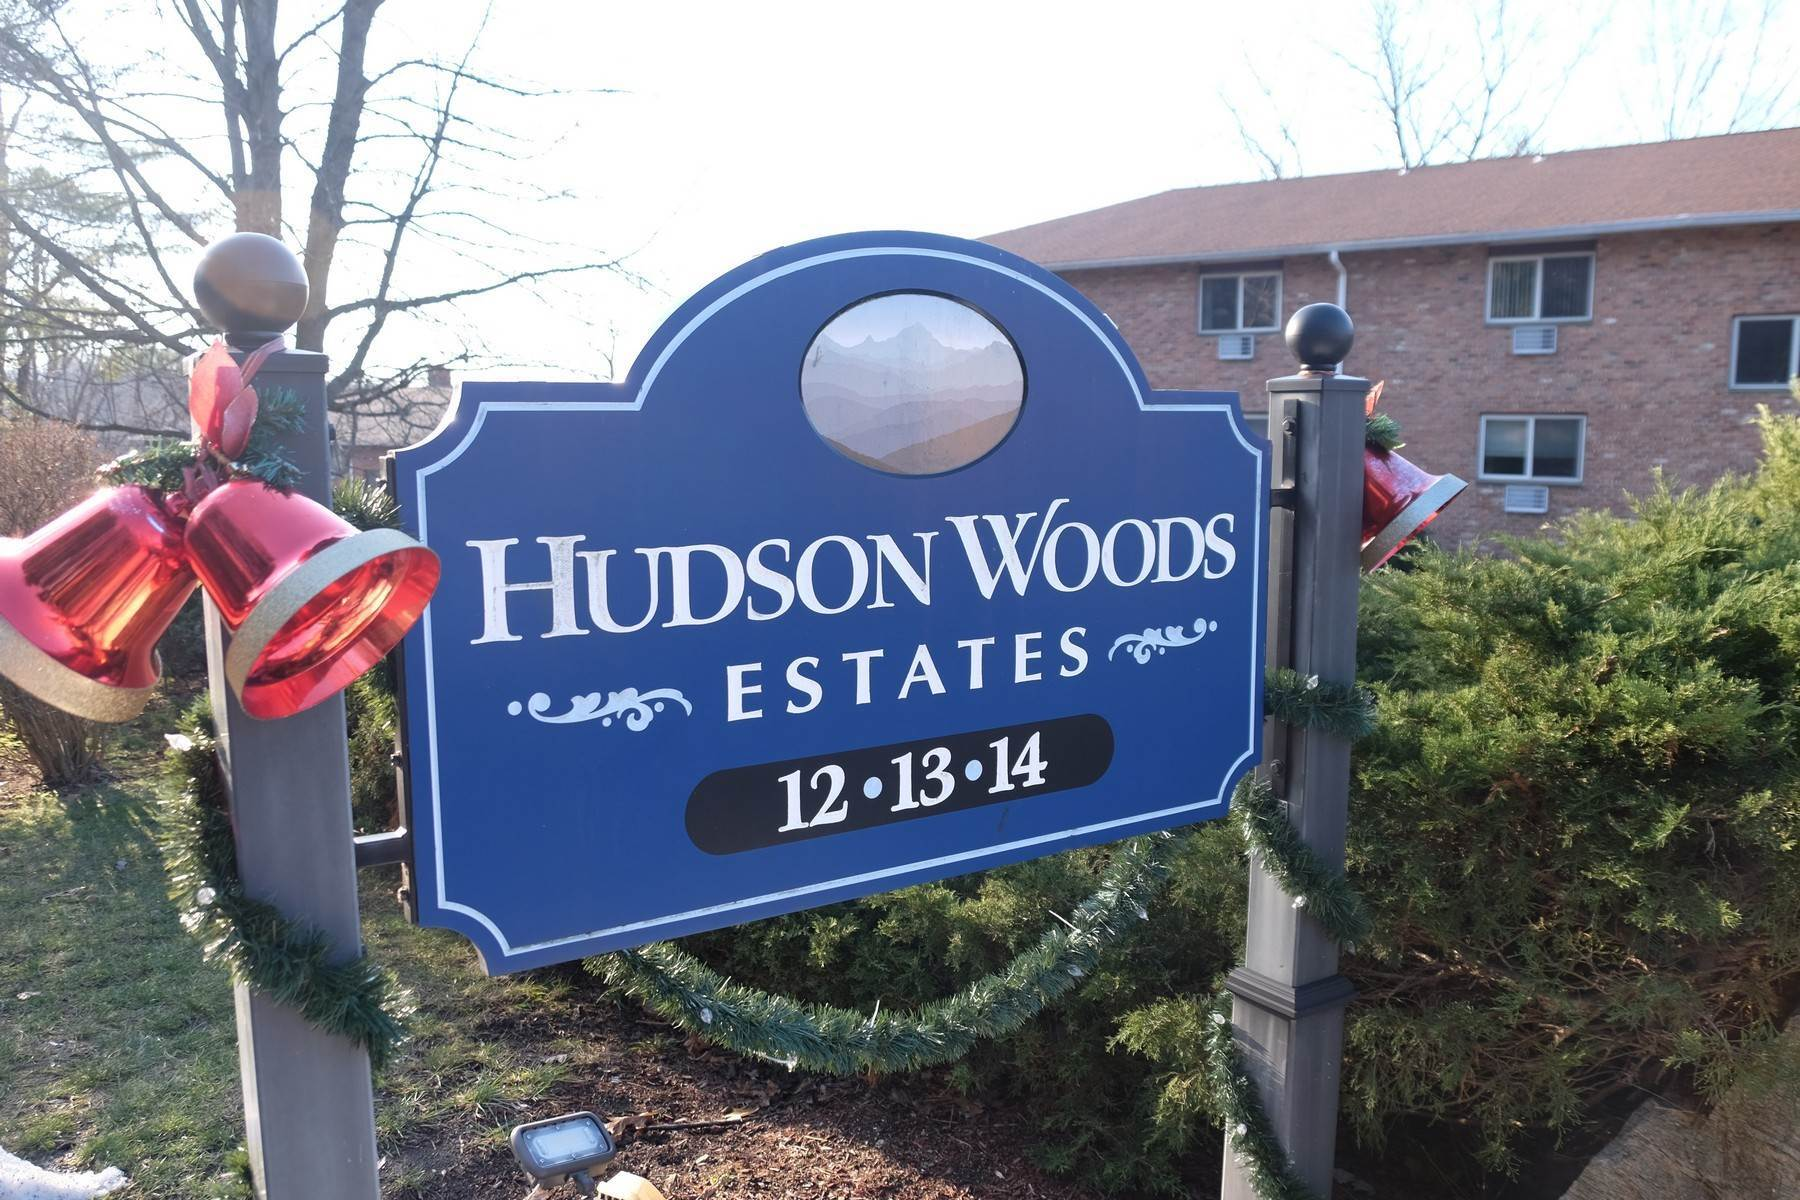 Apartments для того Продажа на Hudson Woods Estates 13 Scenic Drive #V Croton On Hudson, Нью-Йорк 10520 Соединенные Штаты